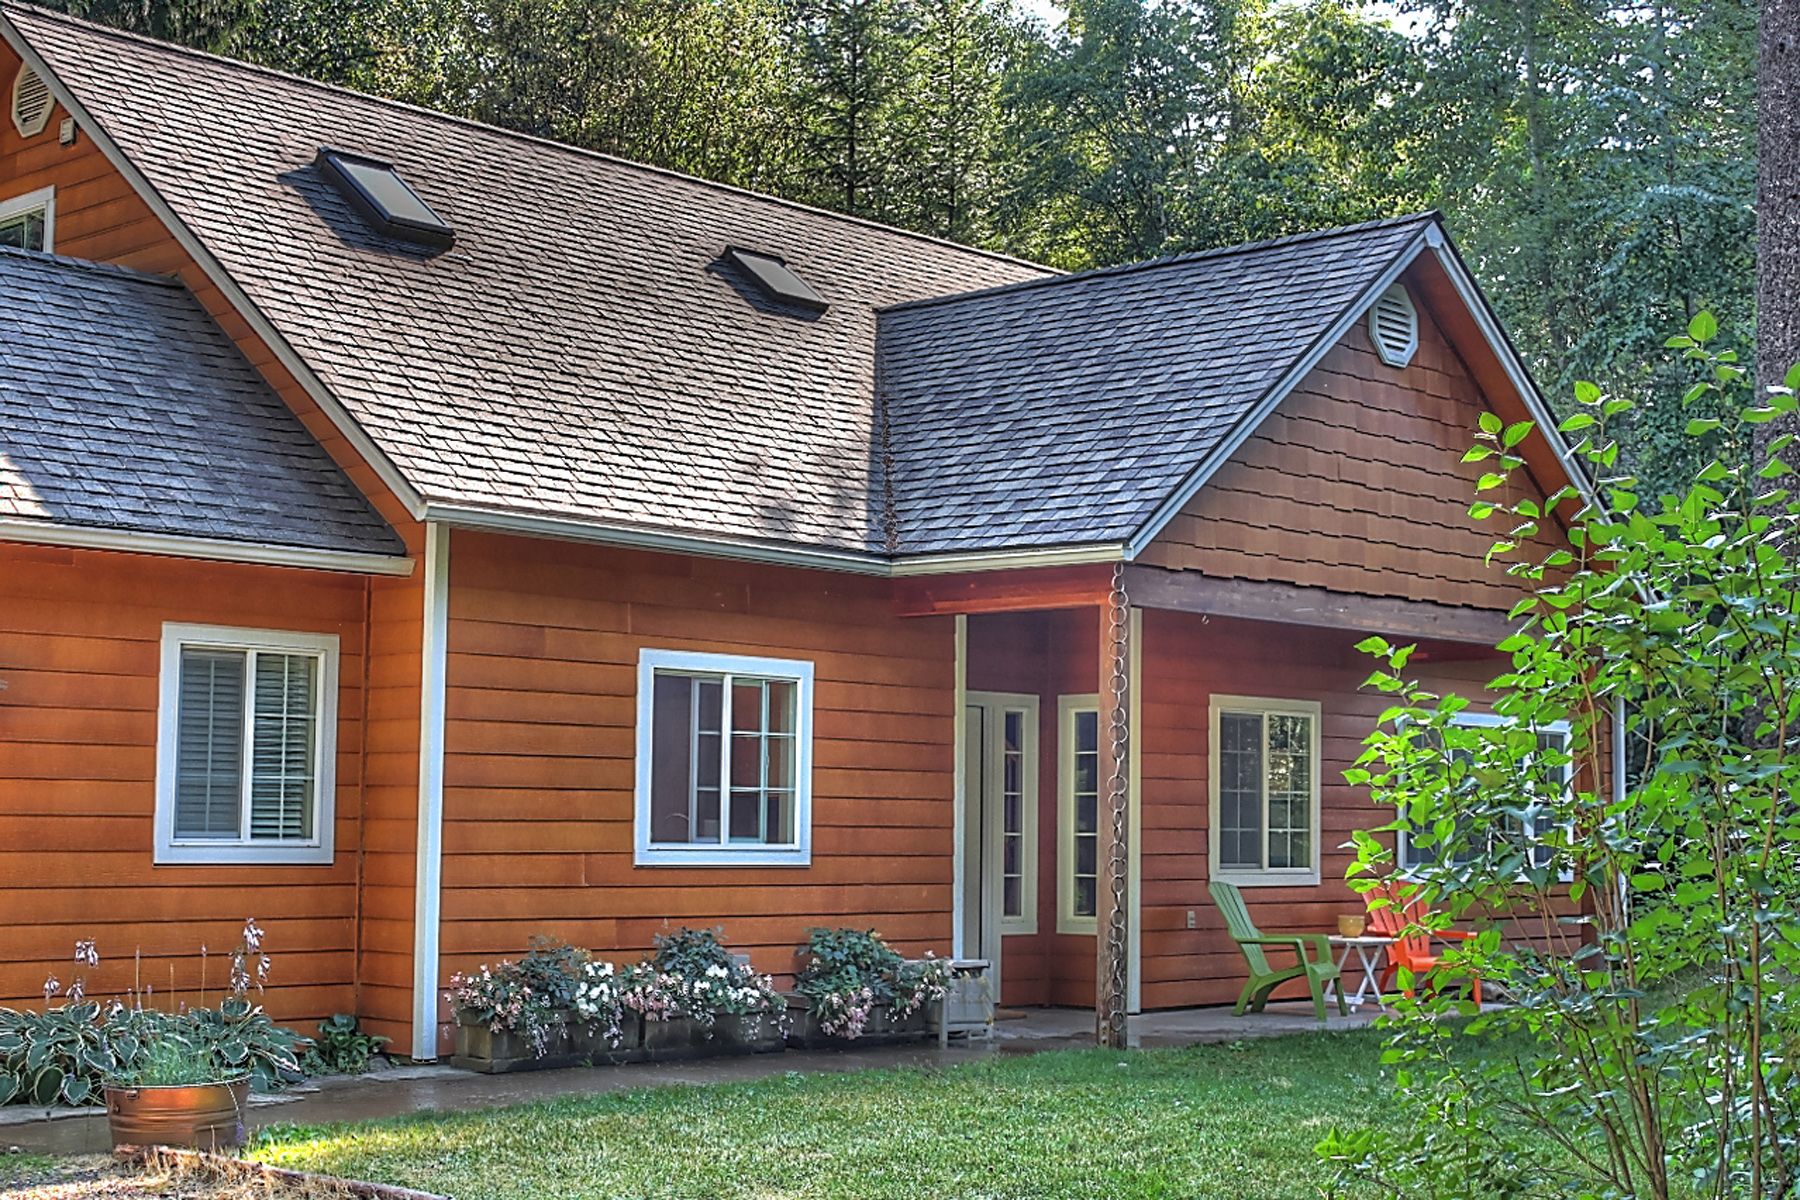 Single Family Home for Sale at Contemporary Rustic Home 408 Sherwoods Rd Sagle, Idaho 83860 United States